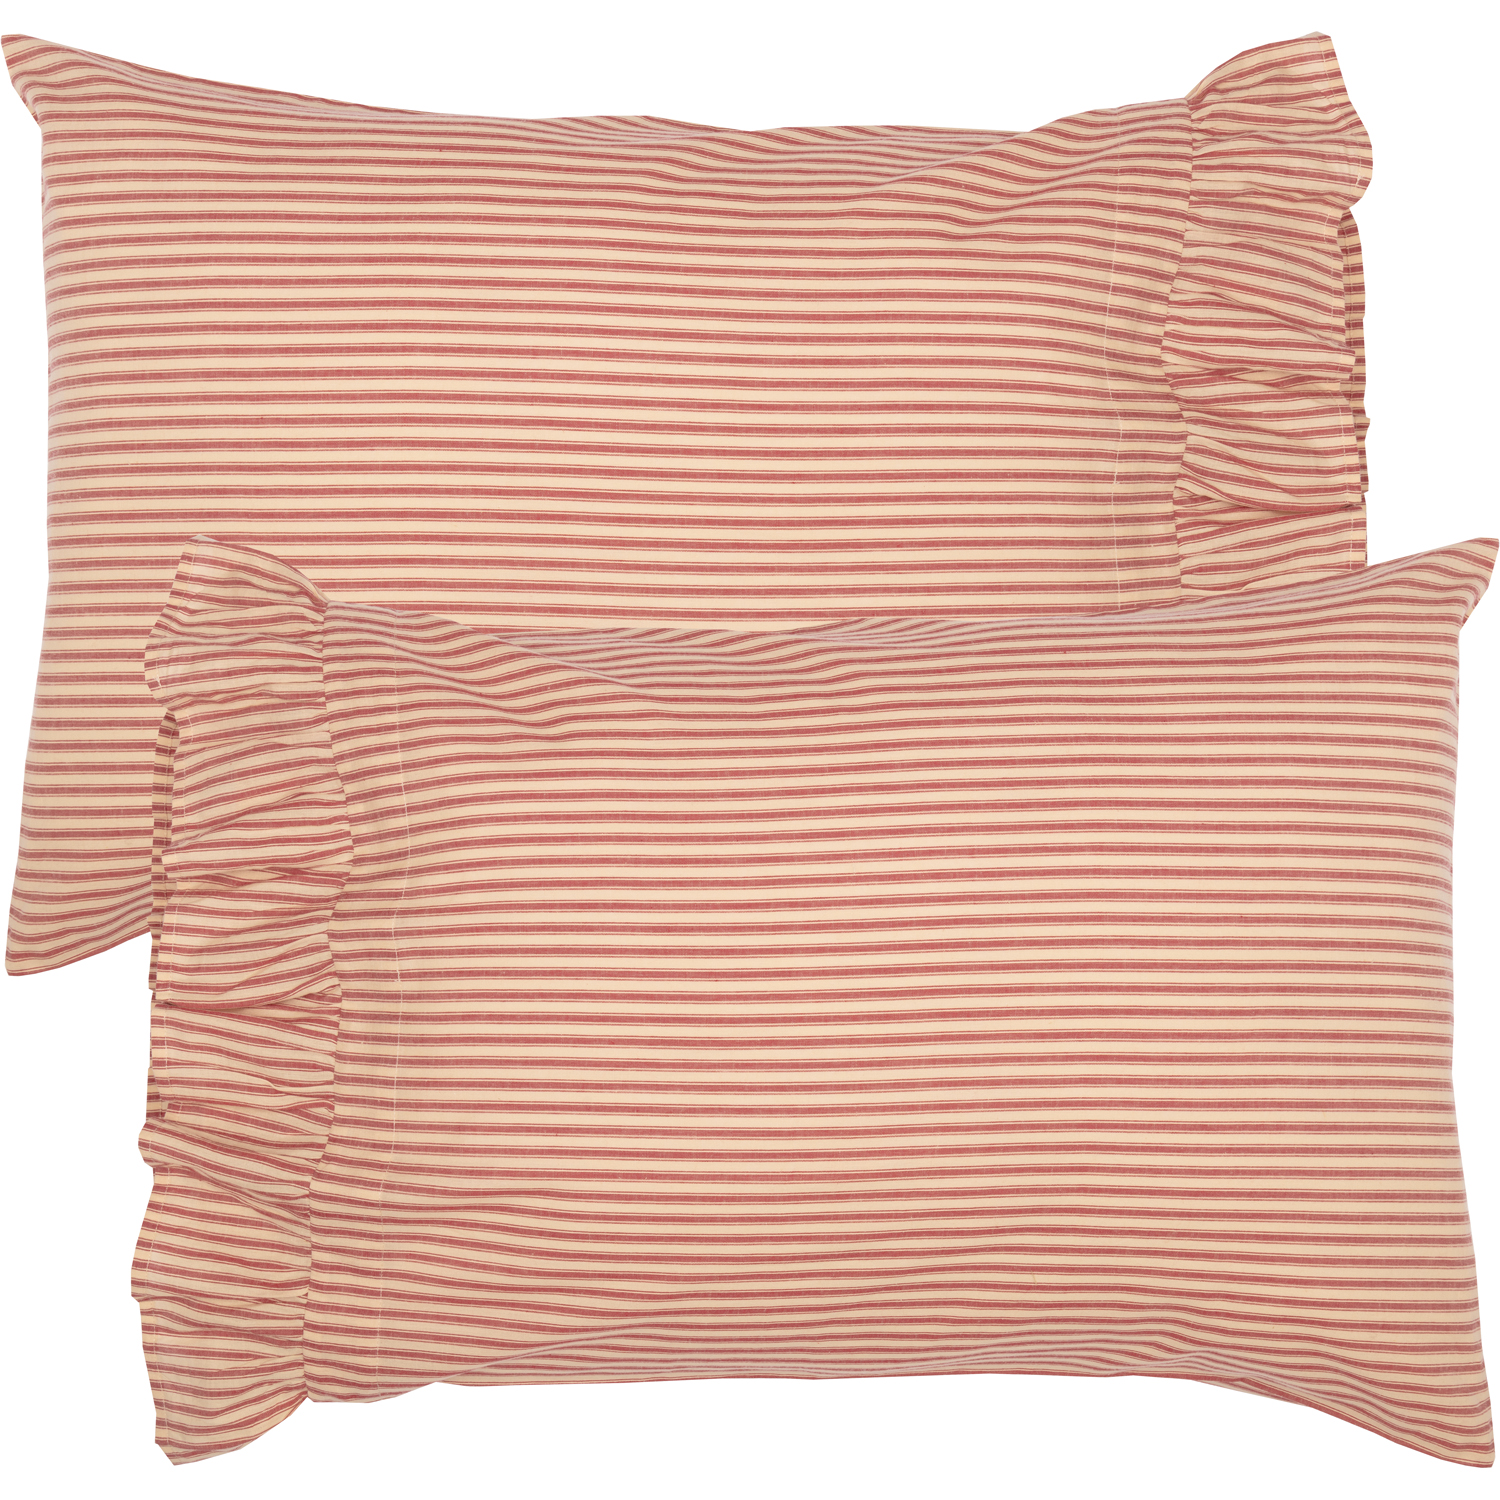 Sawyer Mill Red Ticking Stripe Standard Pillow Case Set of 2 21x30